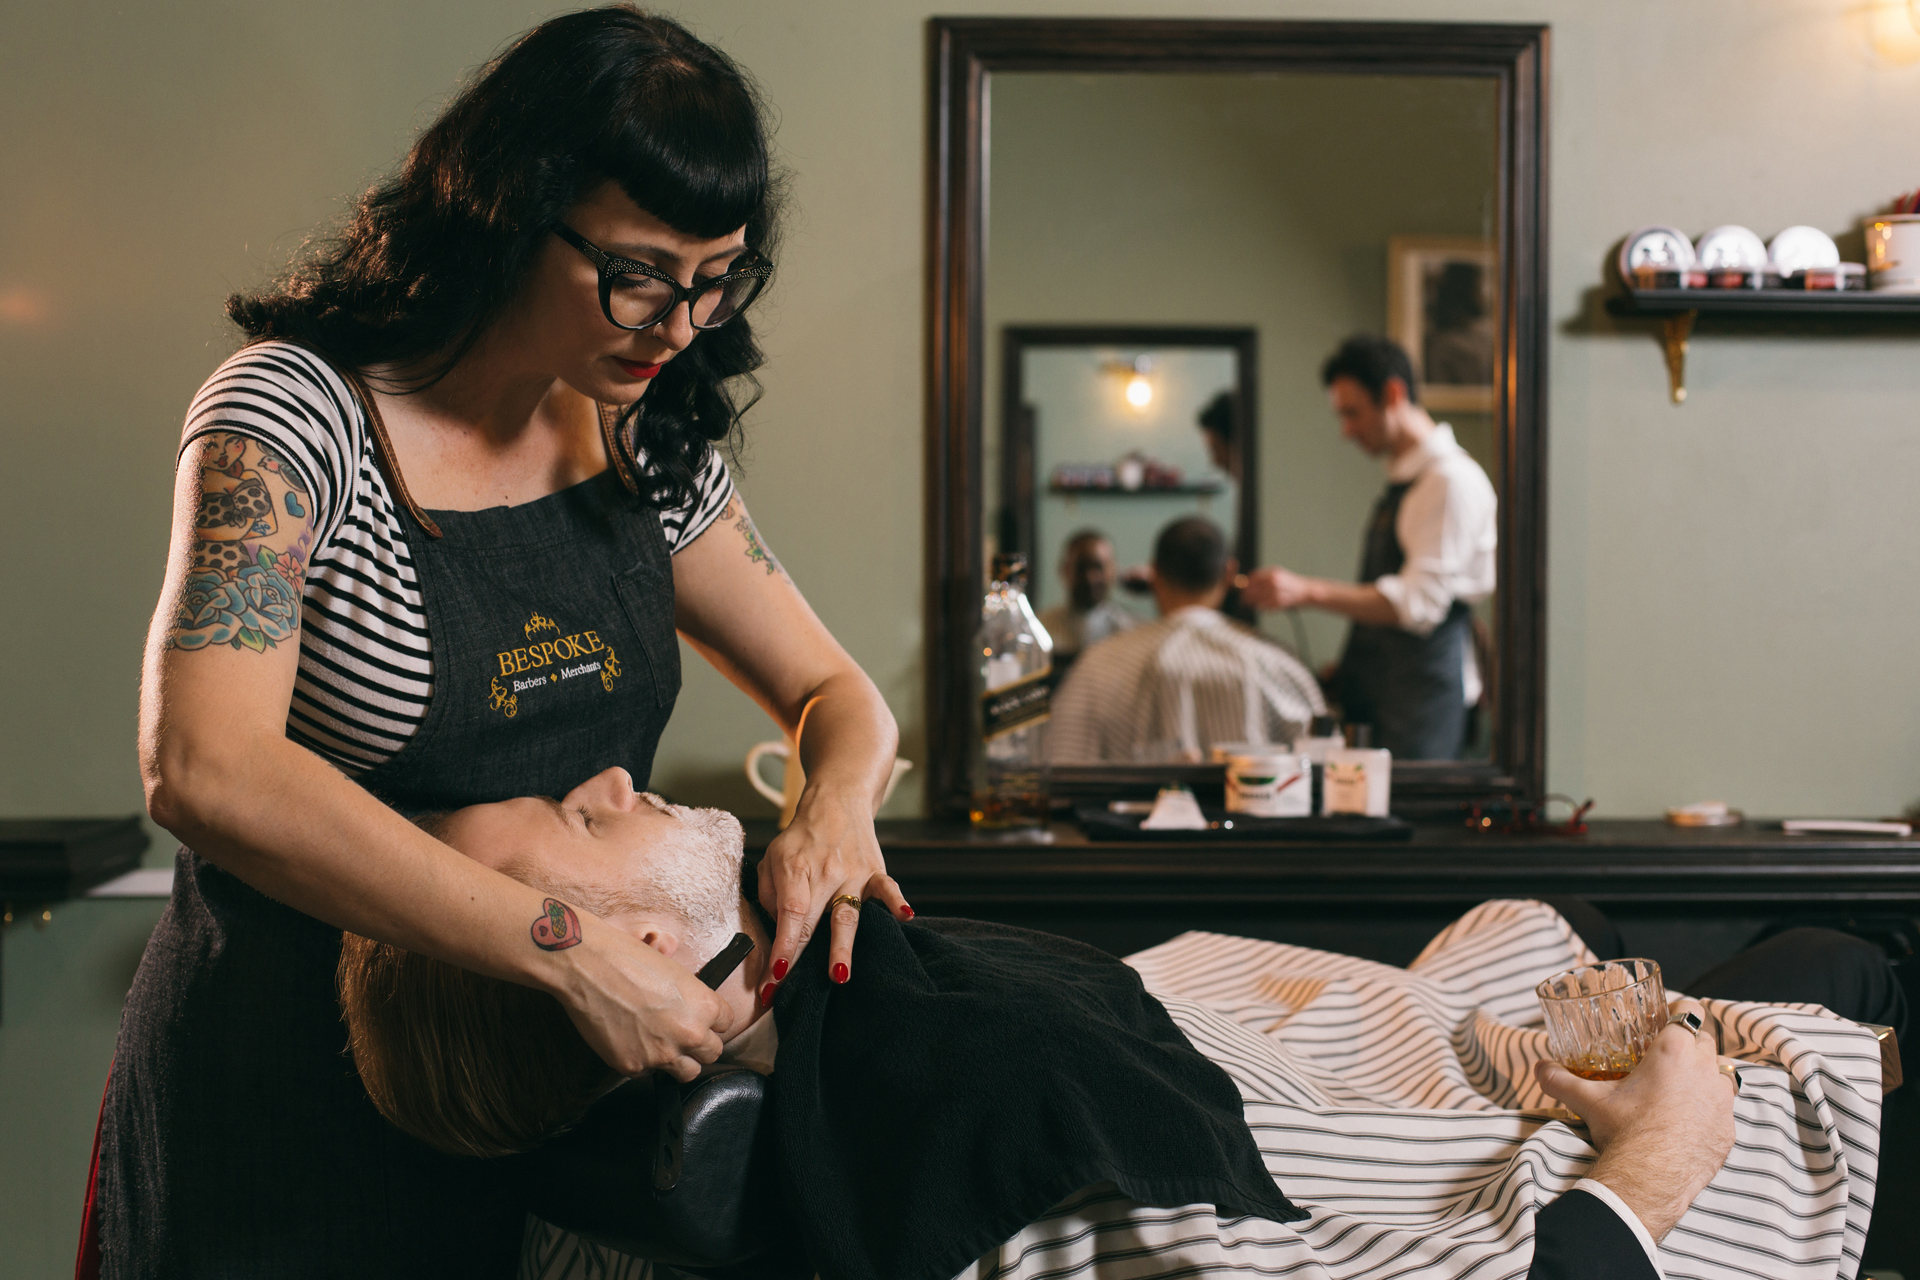 Barber_Portrait_Photography_Auckland_New-Zealand_12.jpg